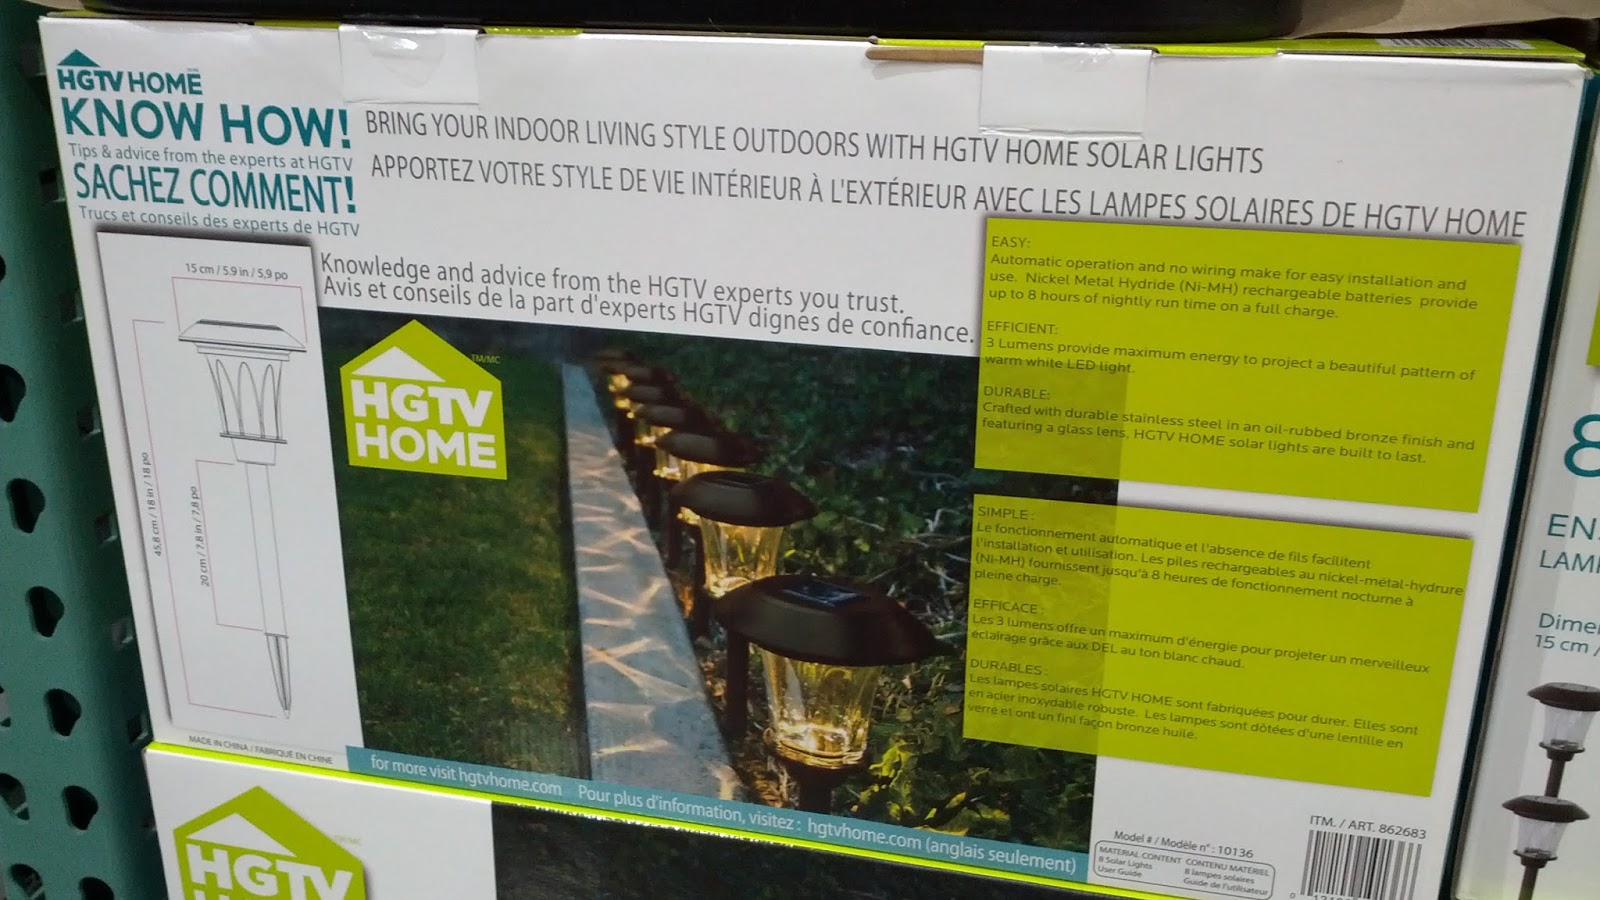 hgtv home 8 piece led solar pathway lights allow you and your guests. Black Bedroom Furniture Sets. Home Design Ideas